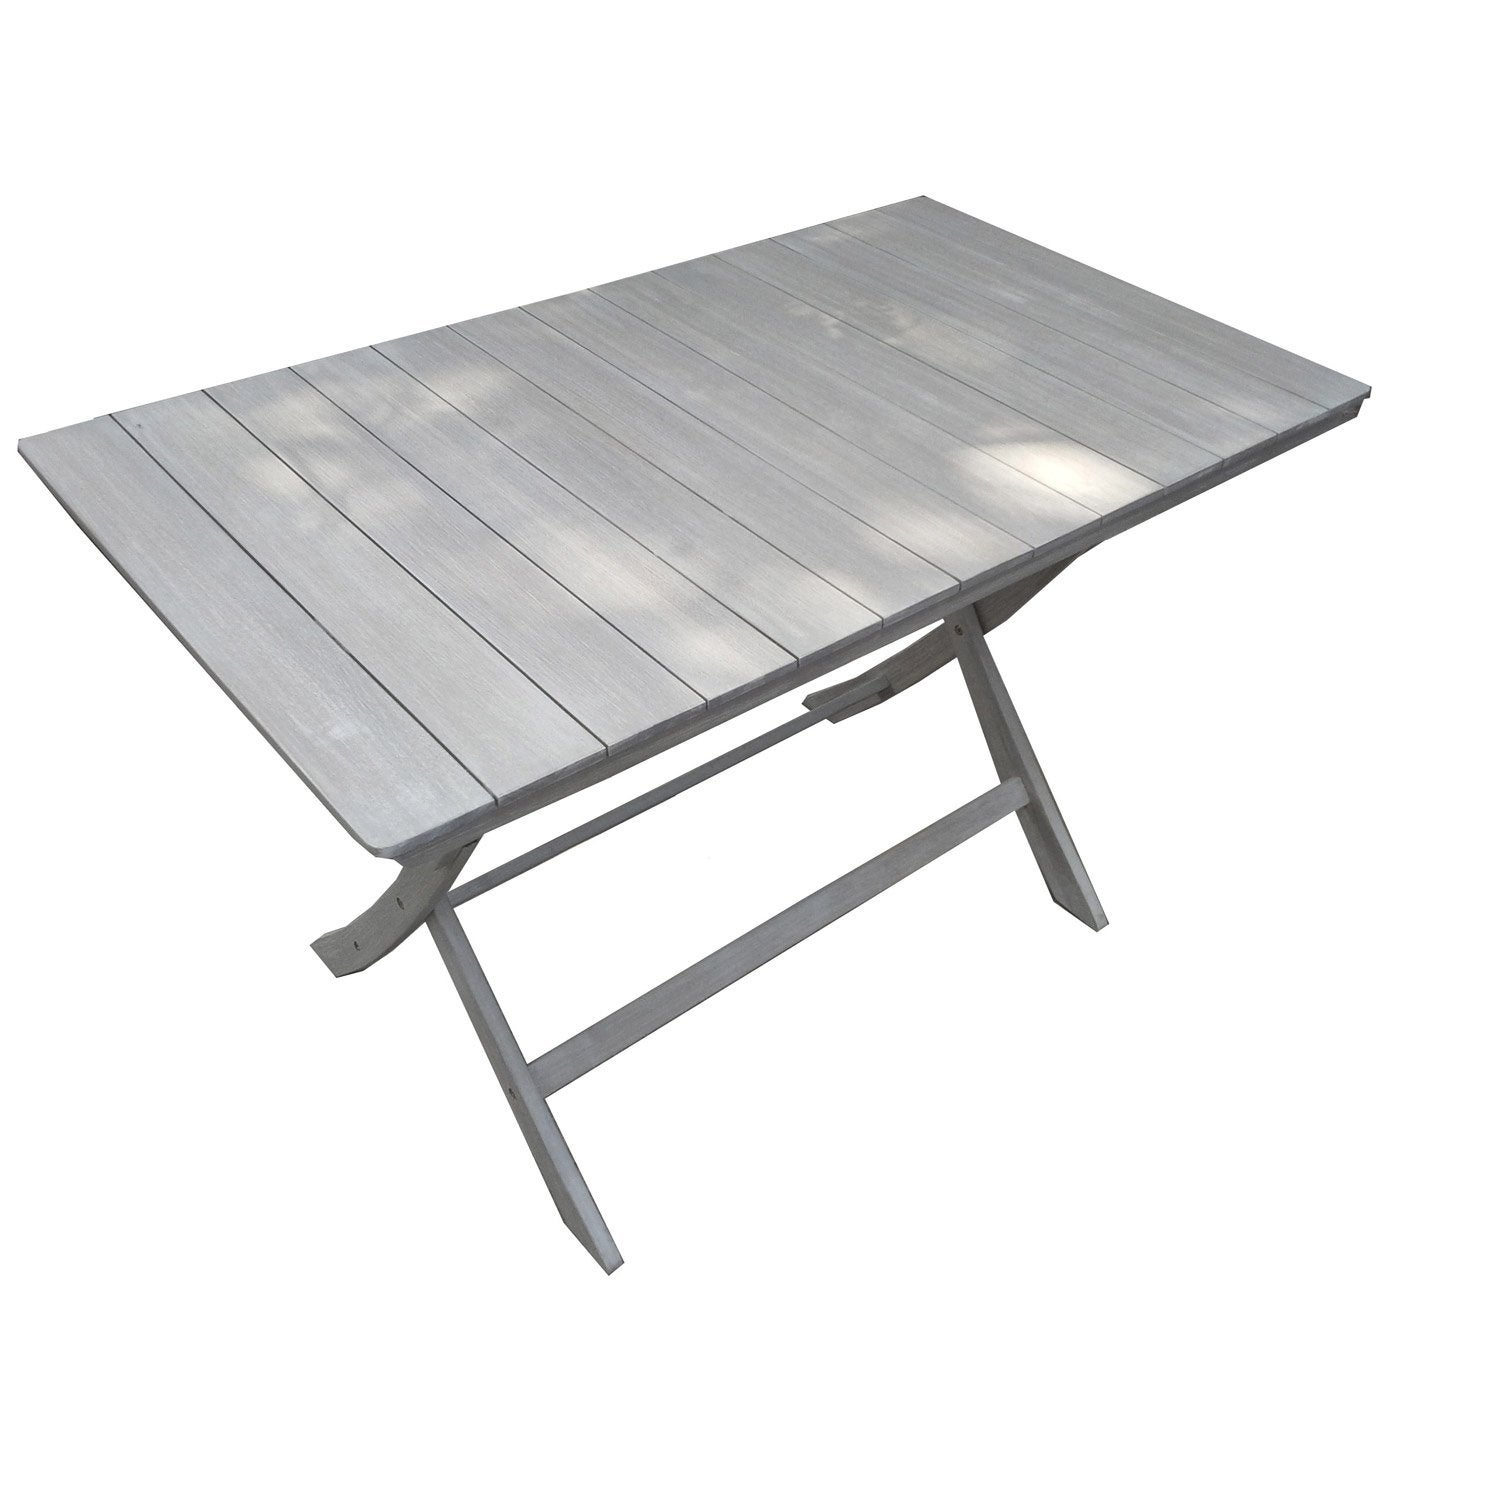 Table de jardin naterial portofino rectangulaire gris 4 personnes leroy merlin - Leroy merlin table pliante ...